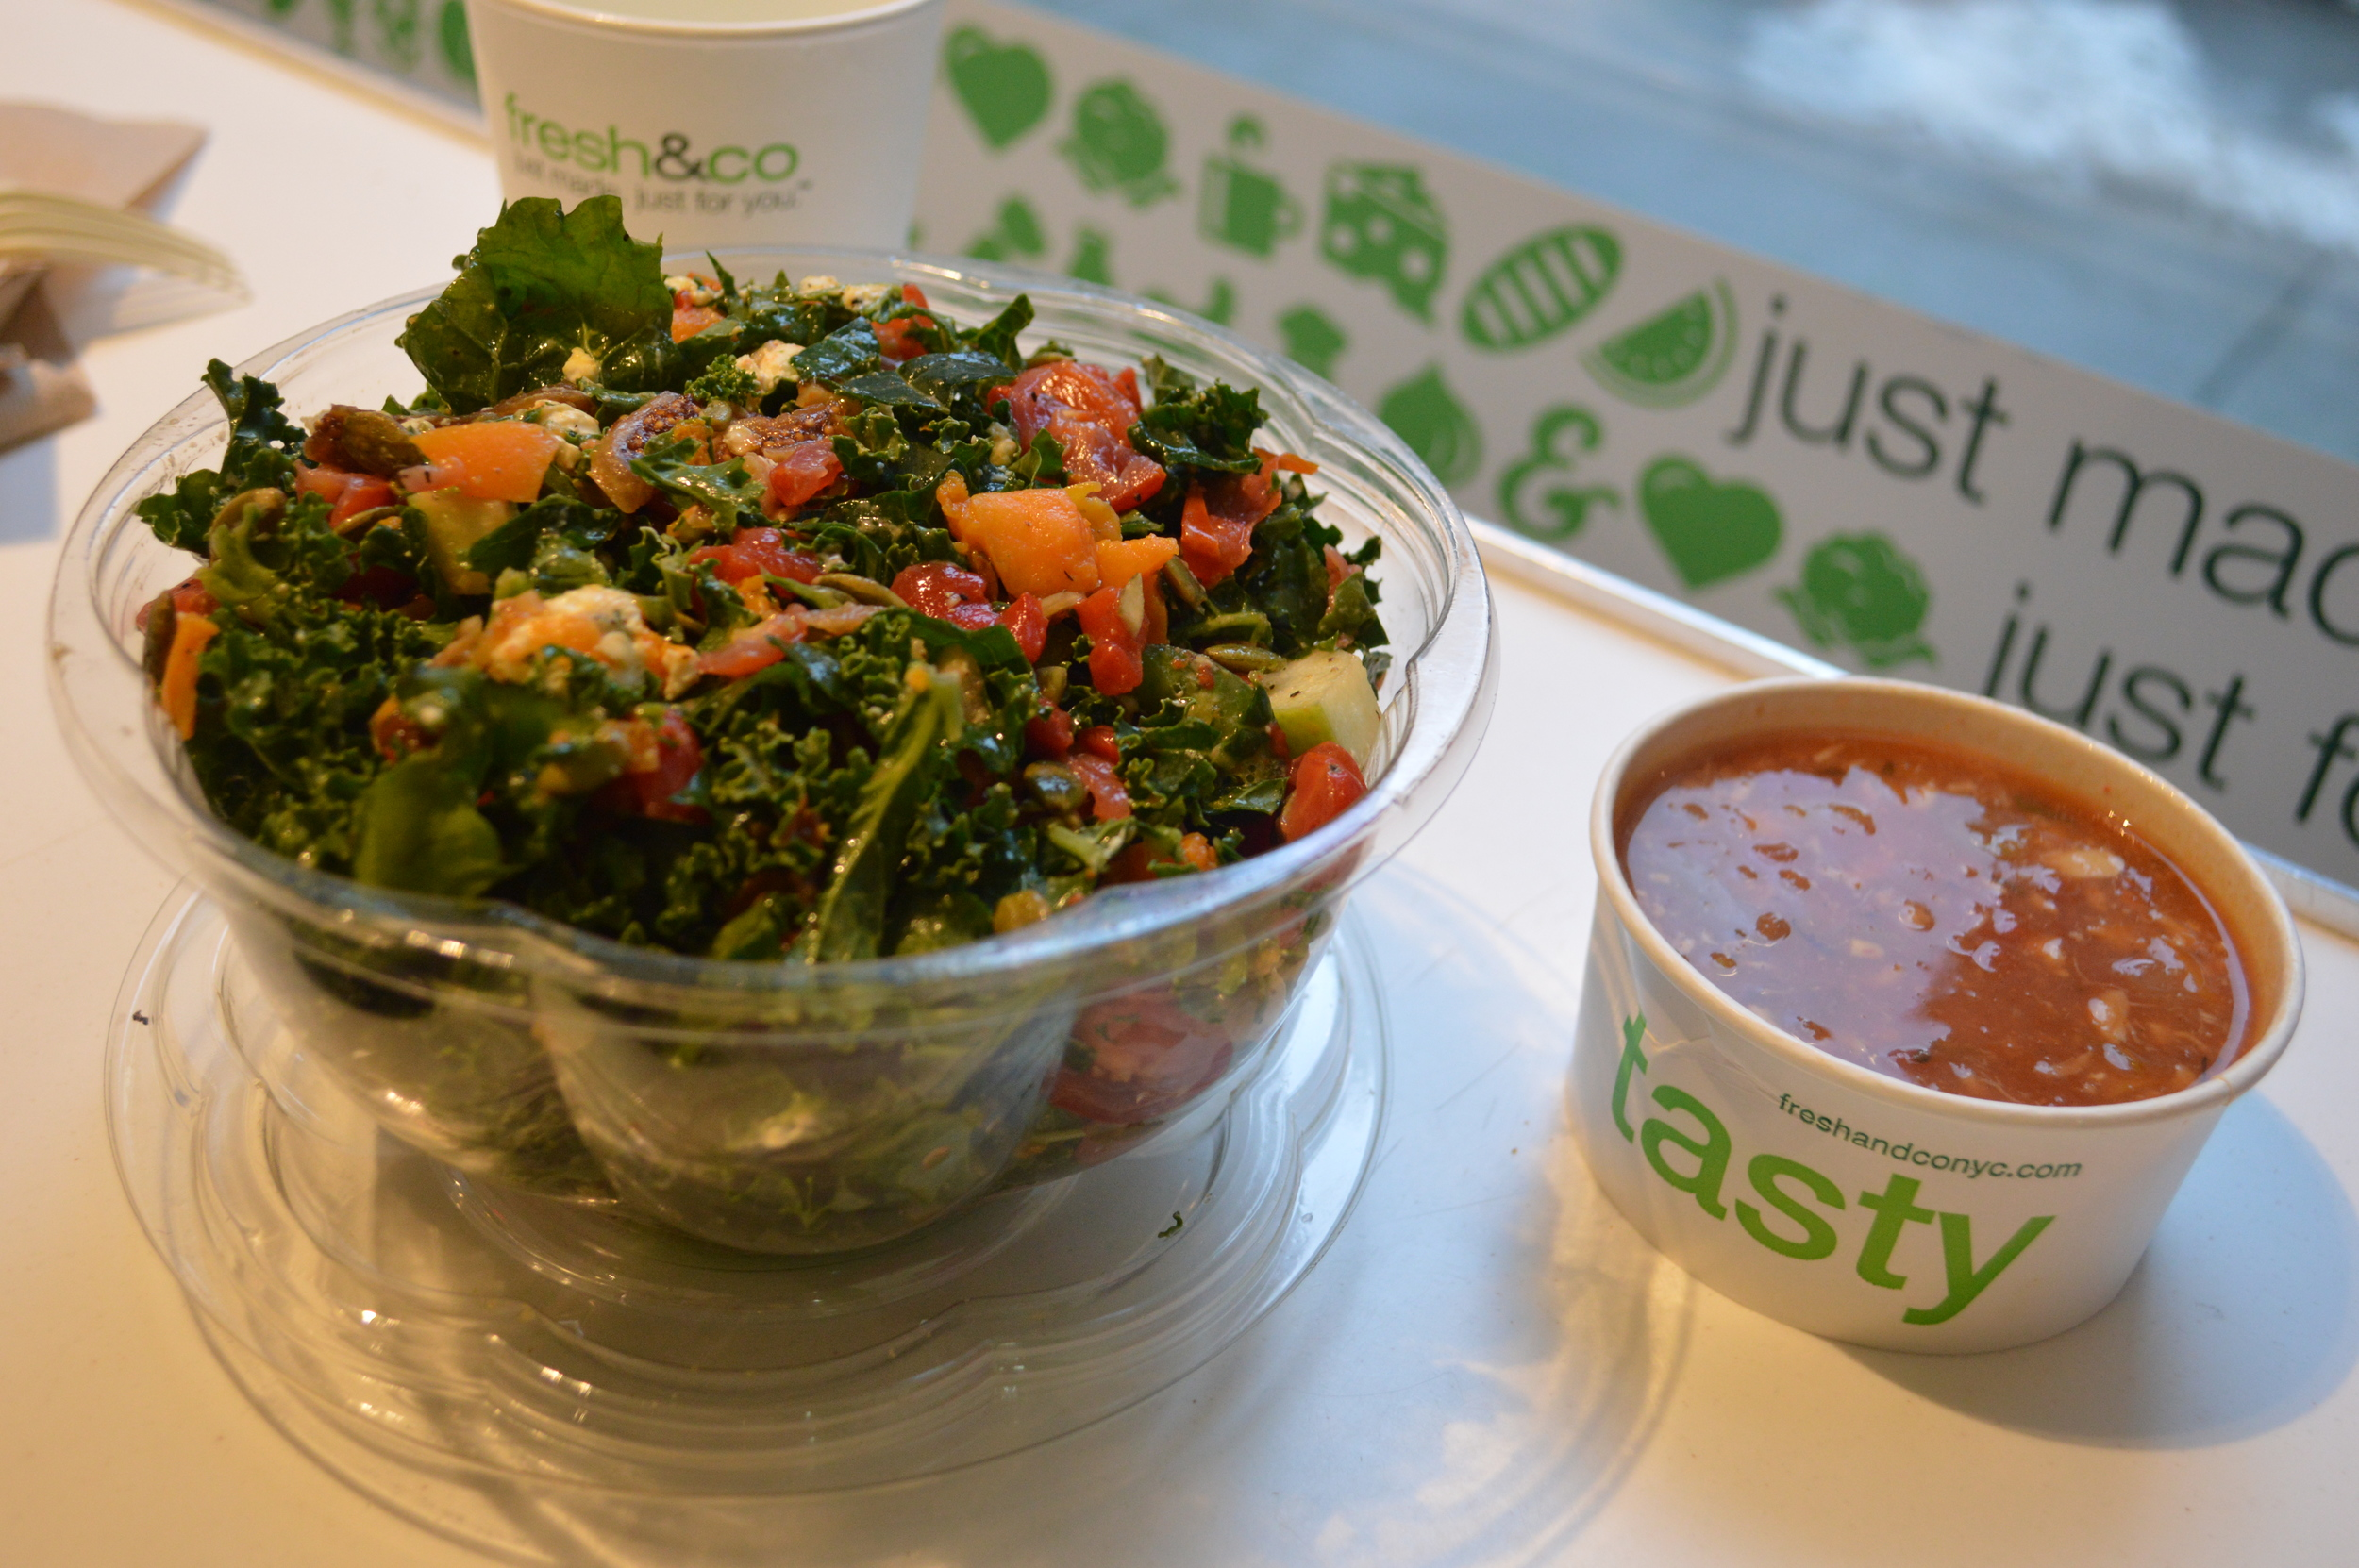 Fresh & Co. Kale Salad + Soup